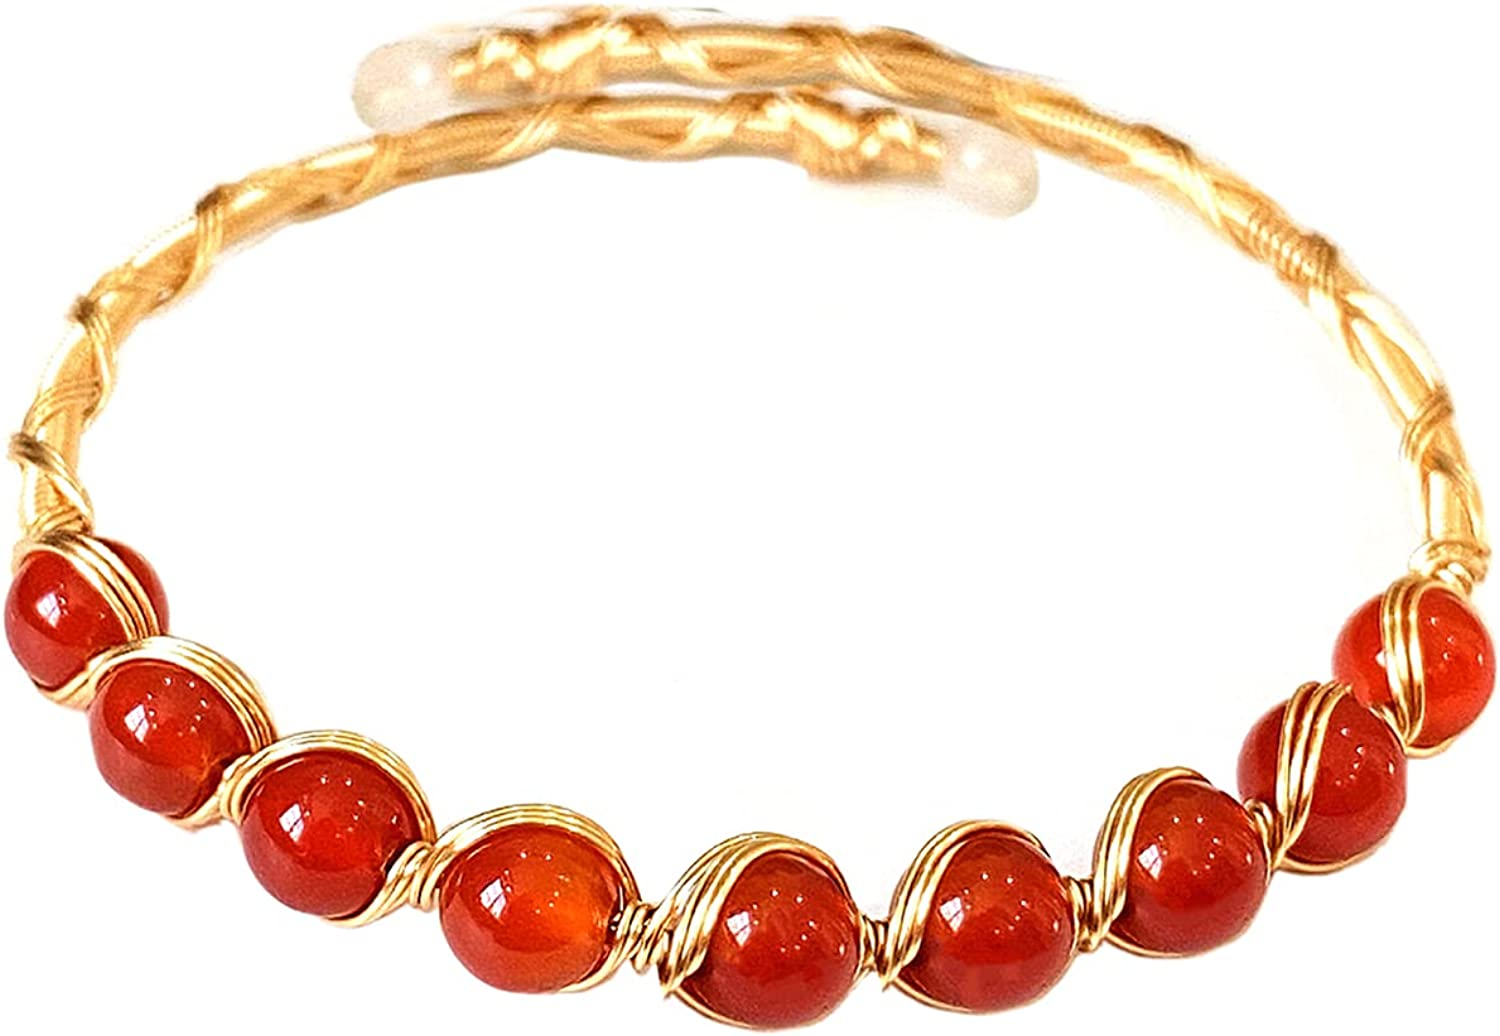 Natural Handmade Red Agate Round Beaded Chakra Cuff Bracelet Adjustable 14K Gold Plated Wrapped Lobster Clasp Bracelet Pearl Stone Bead Open Cuff Bracelet for Women Girls Delicate Jewelry Gift